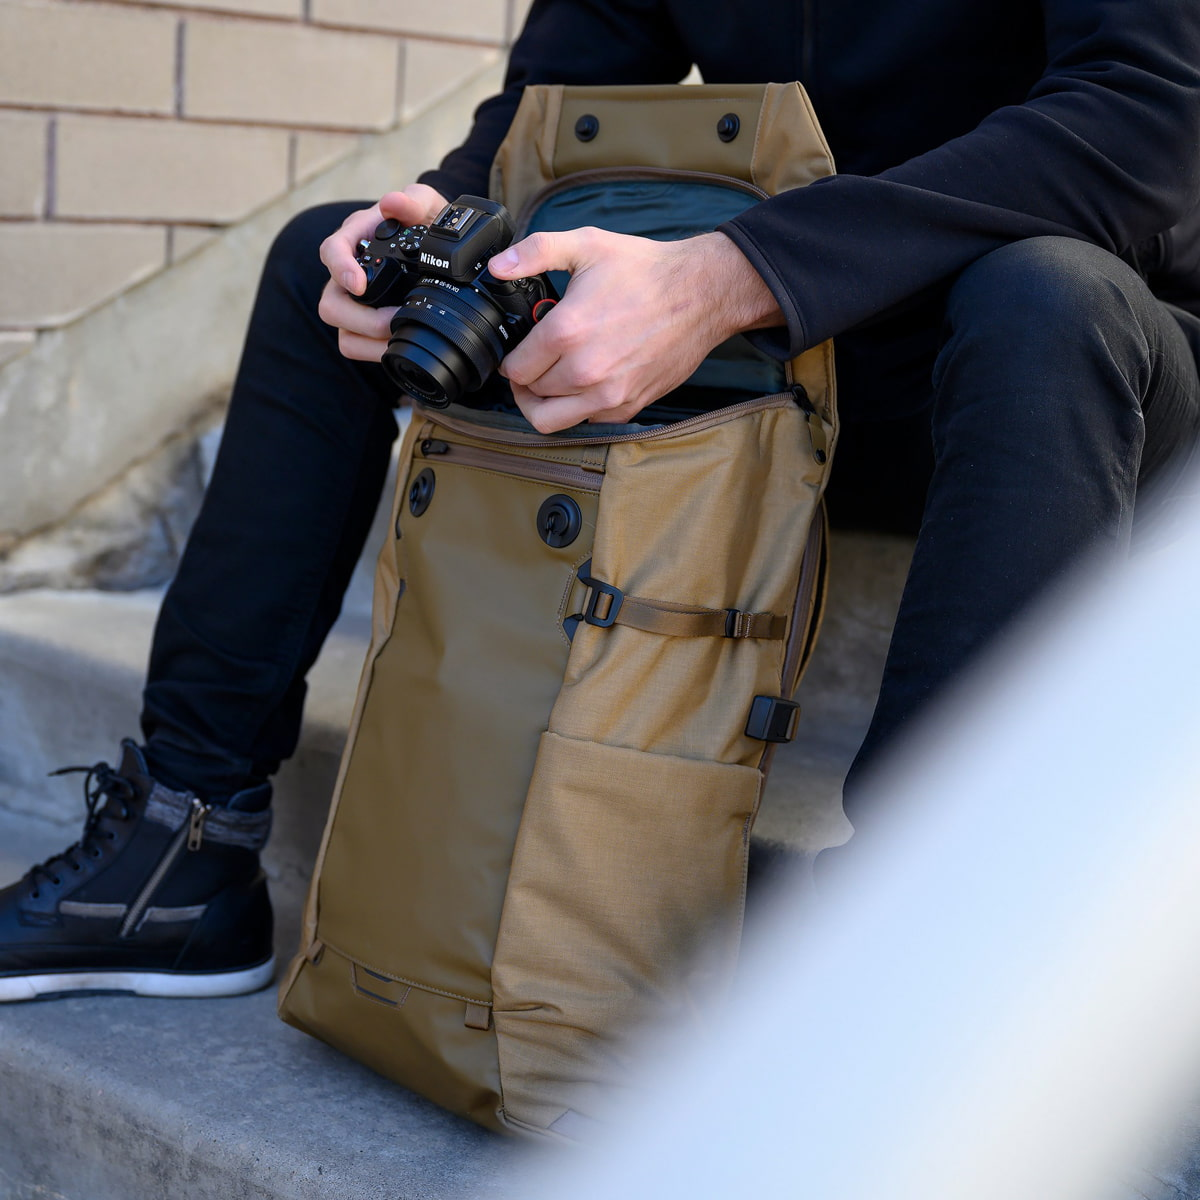 The 8 Best Camera Backpacks to Buy in 2021